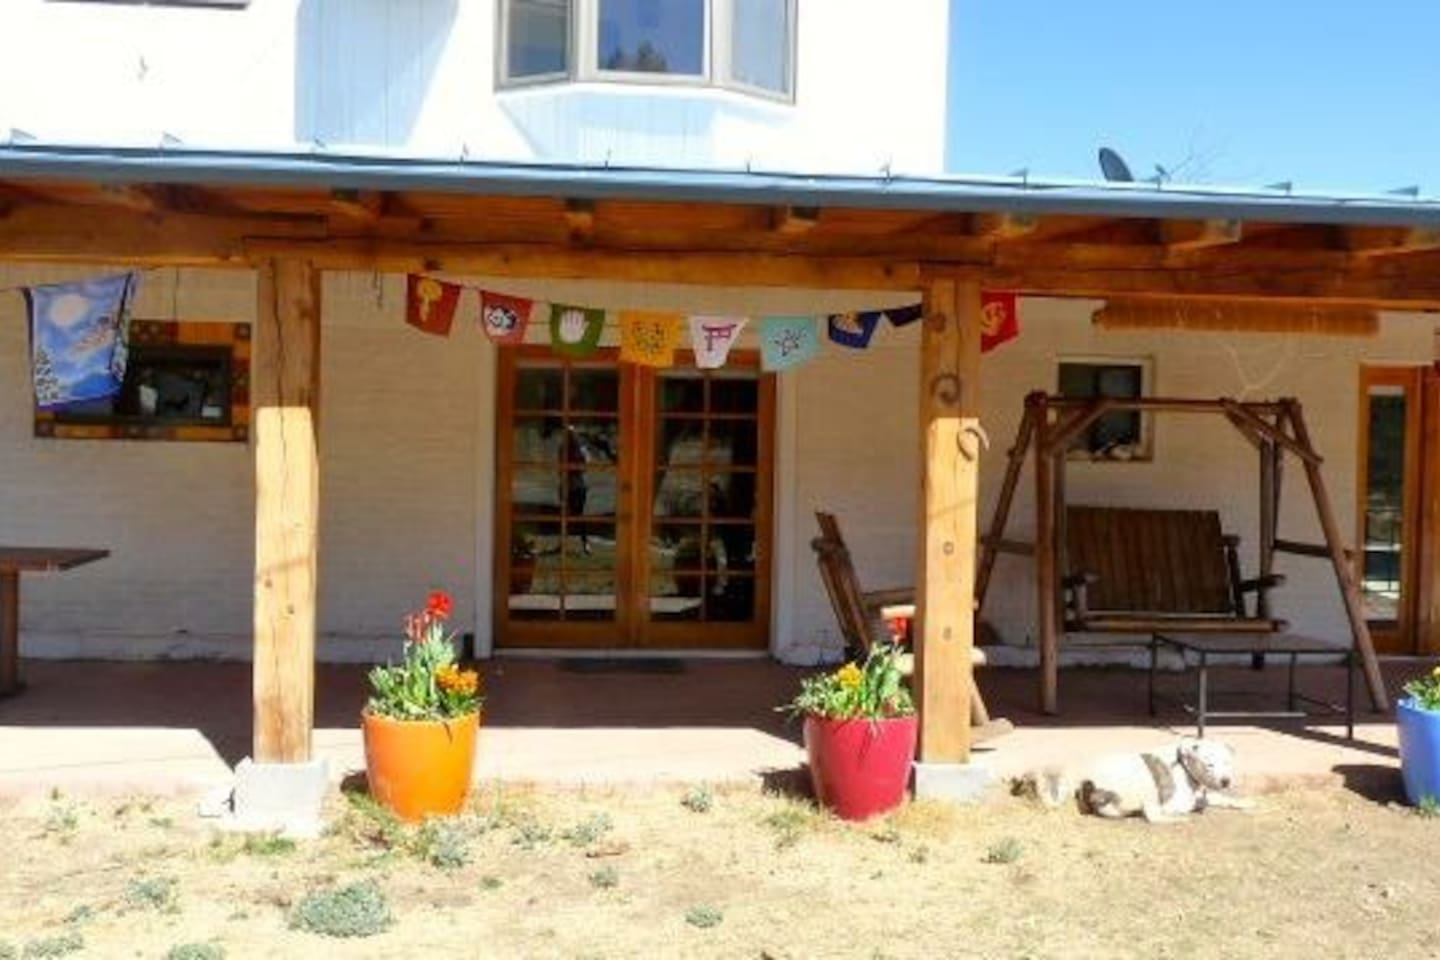 flag-lined front porch with swinging bench and rocking chair